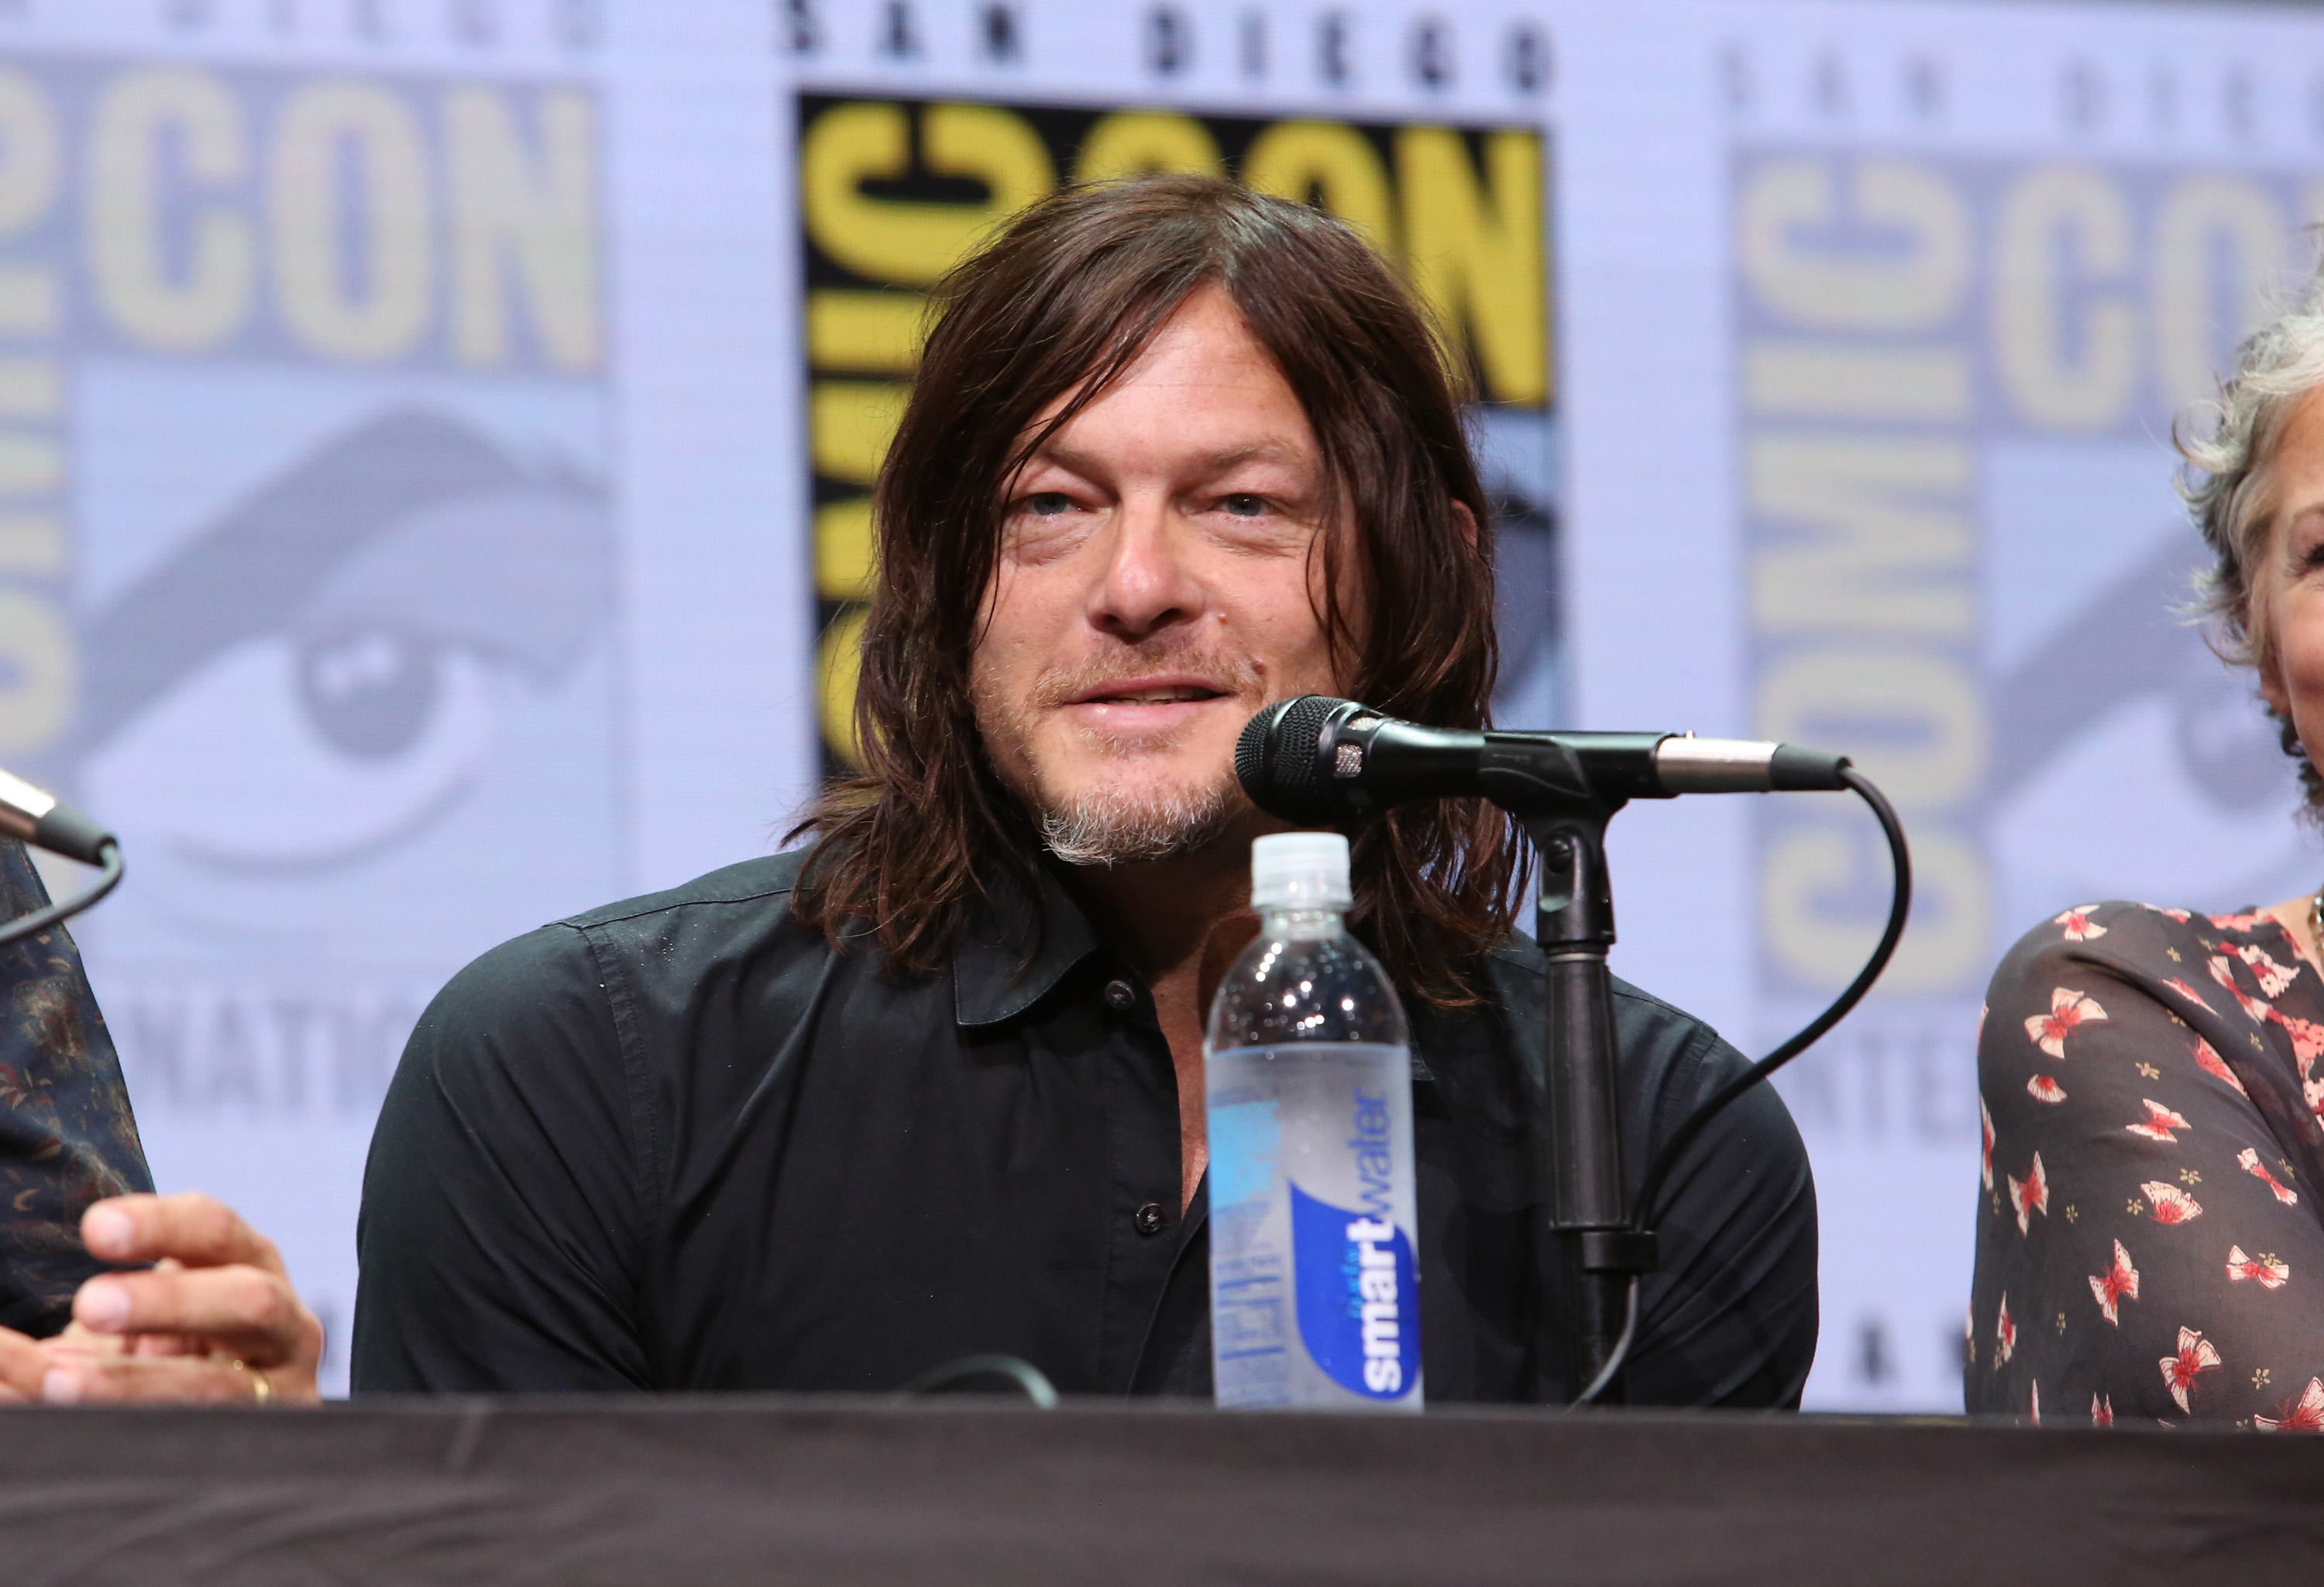 820467810-amc-at-comic-con-2017-day-2.jpg